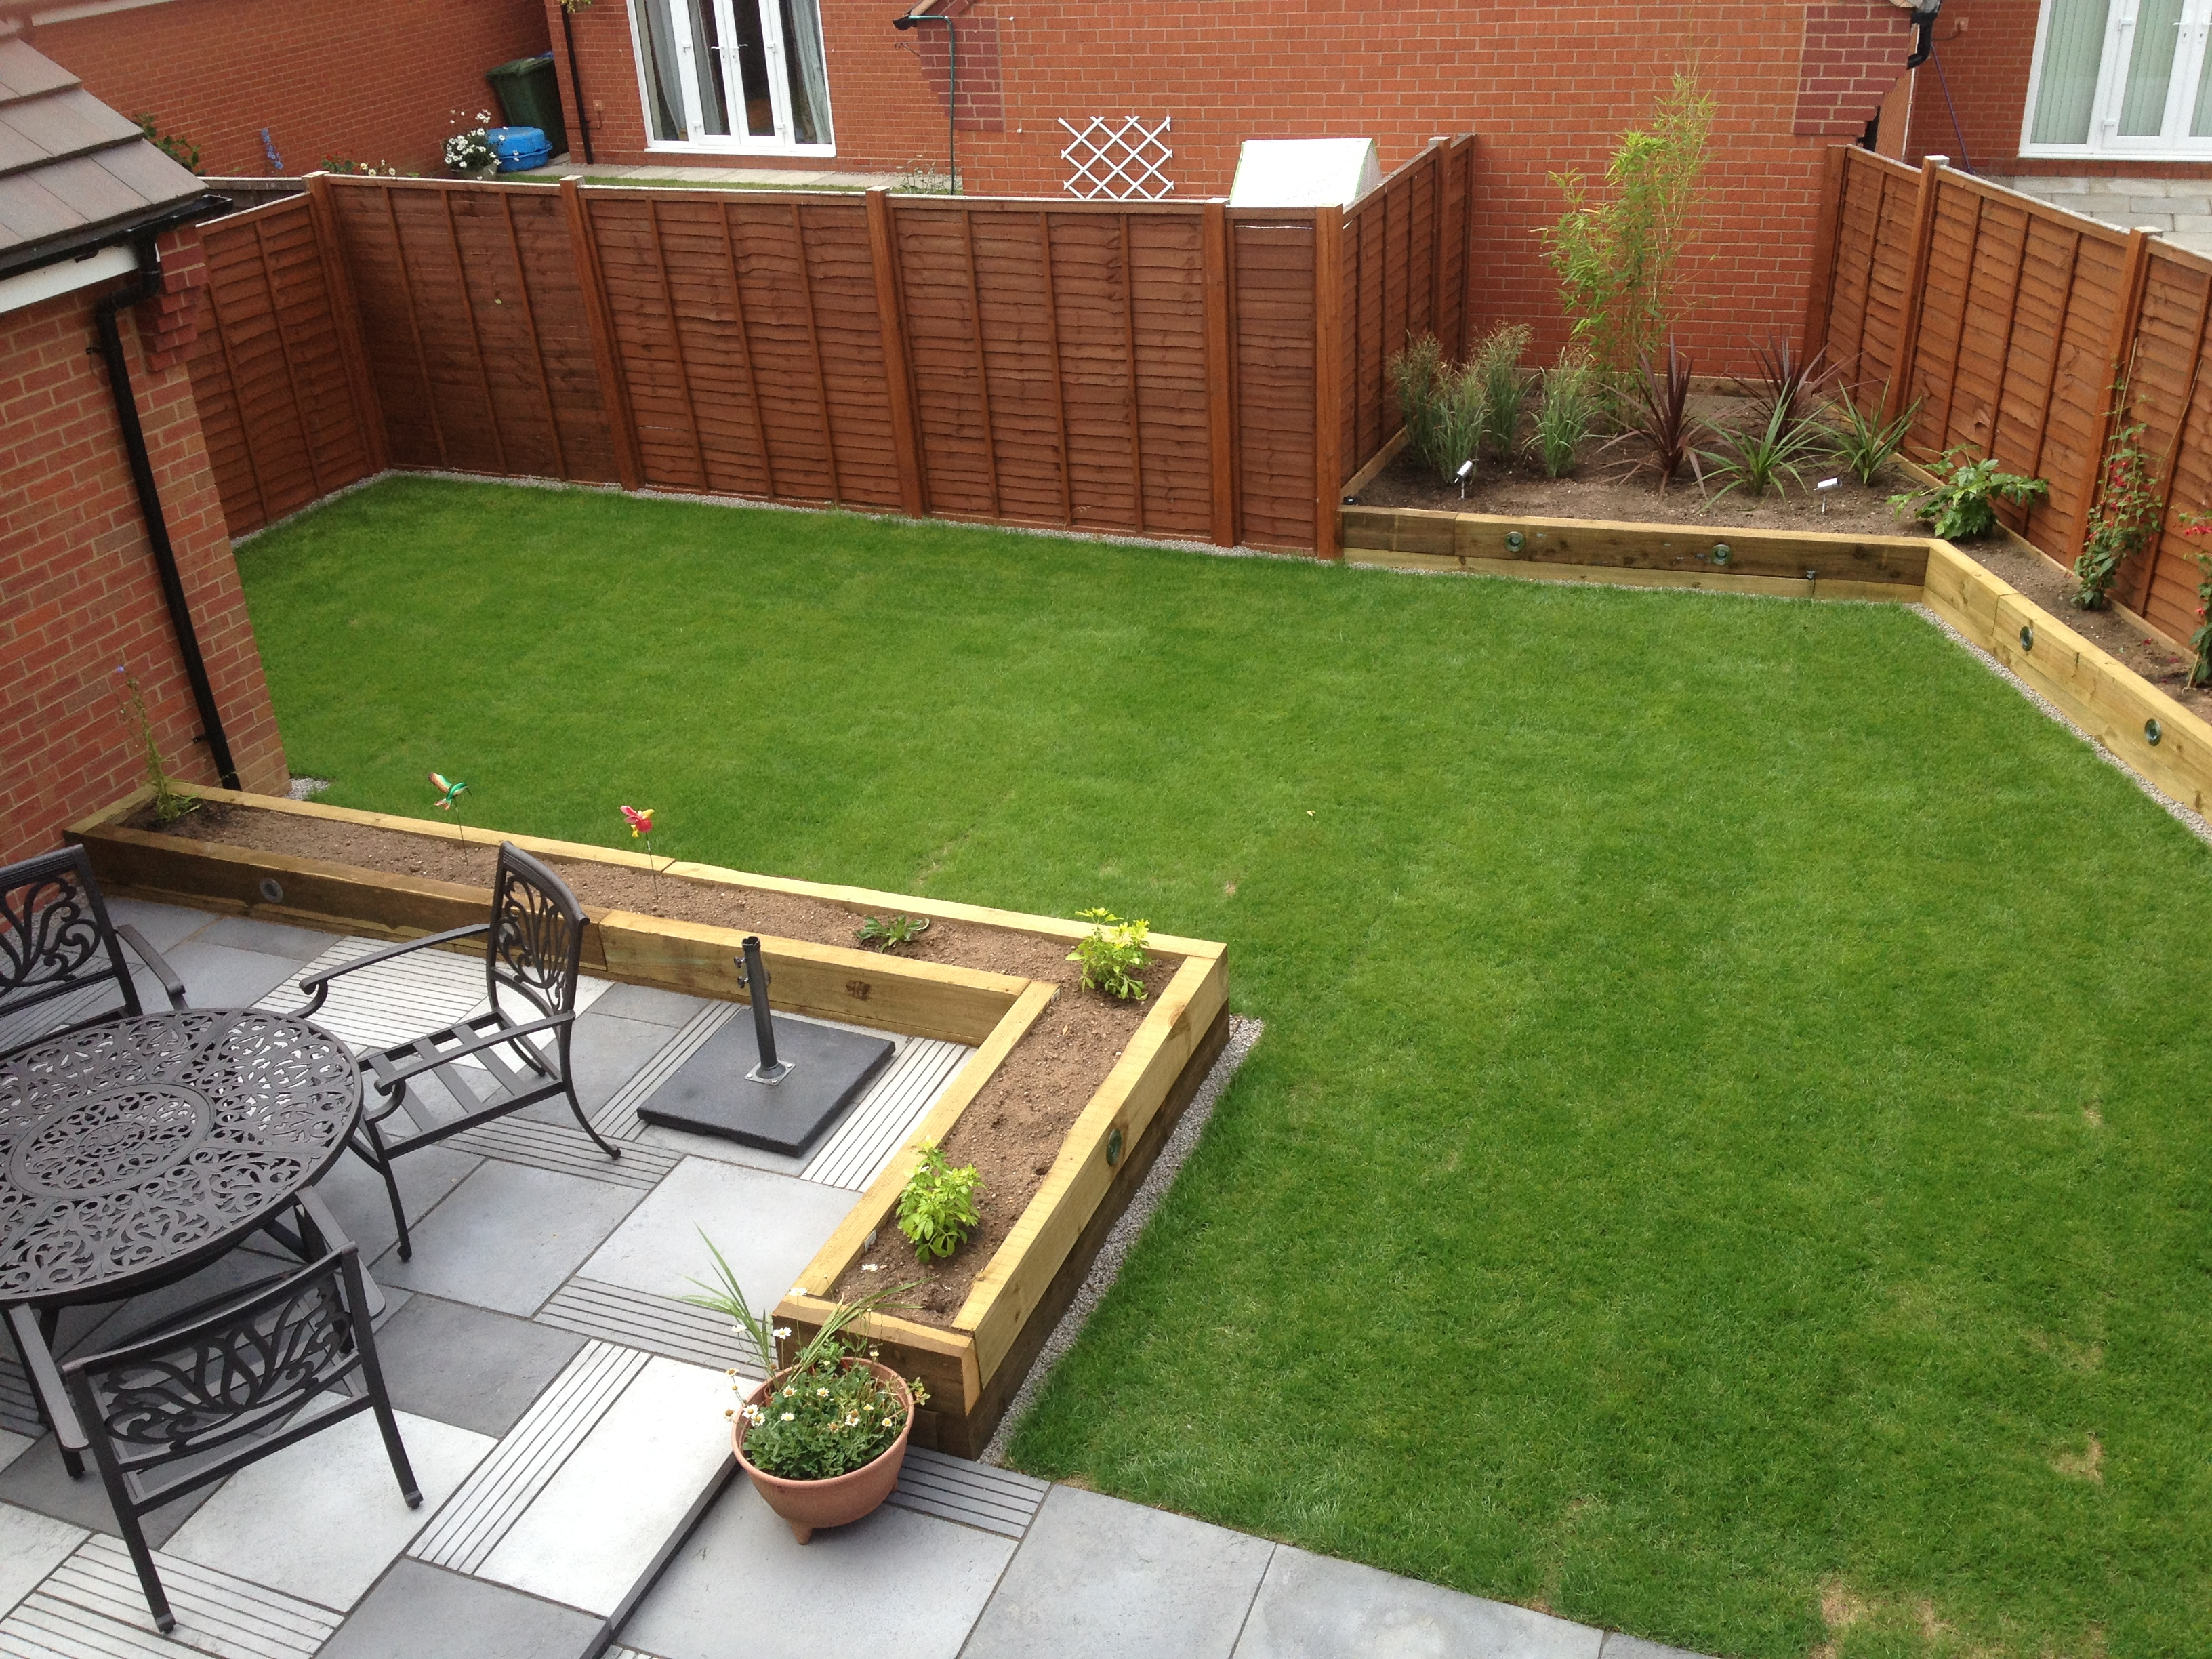 Using Railway Sleepers For Raised Vegetable Beds Paving Raised Sleeper Beds And Garden Lighting Wardens Fencing